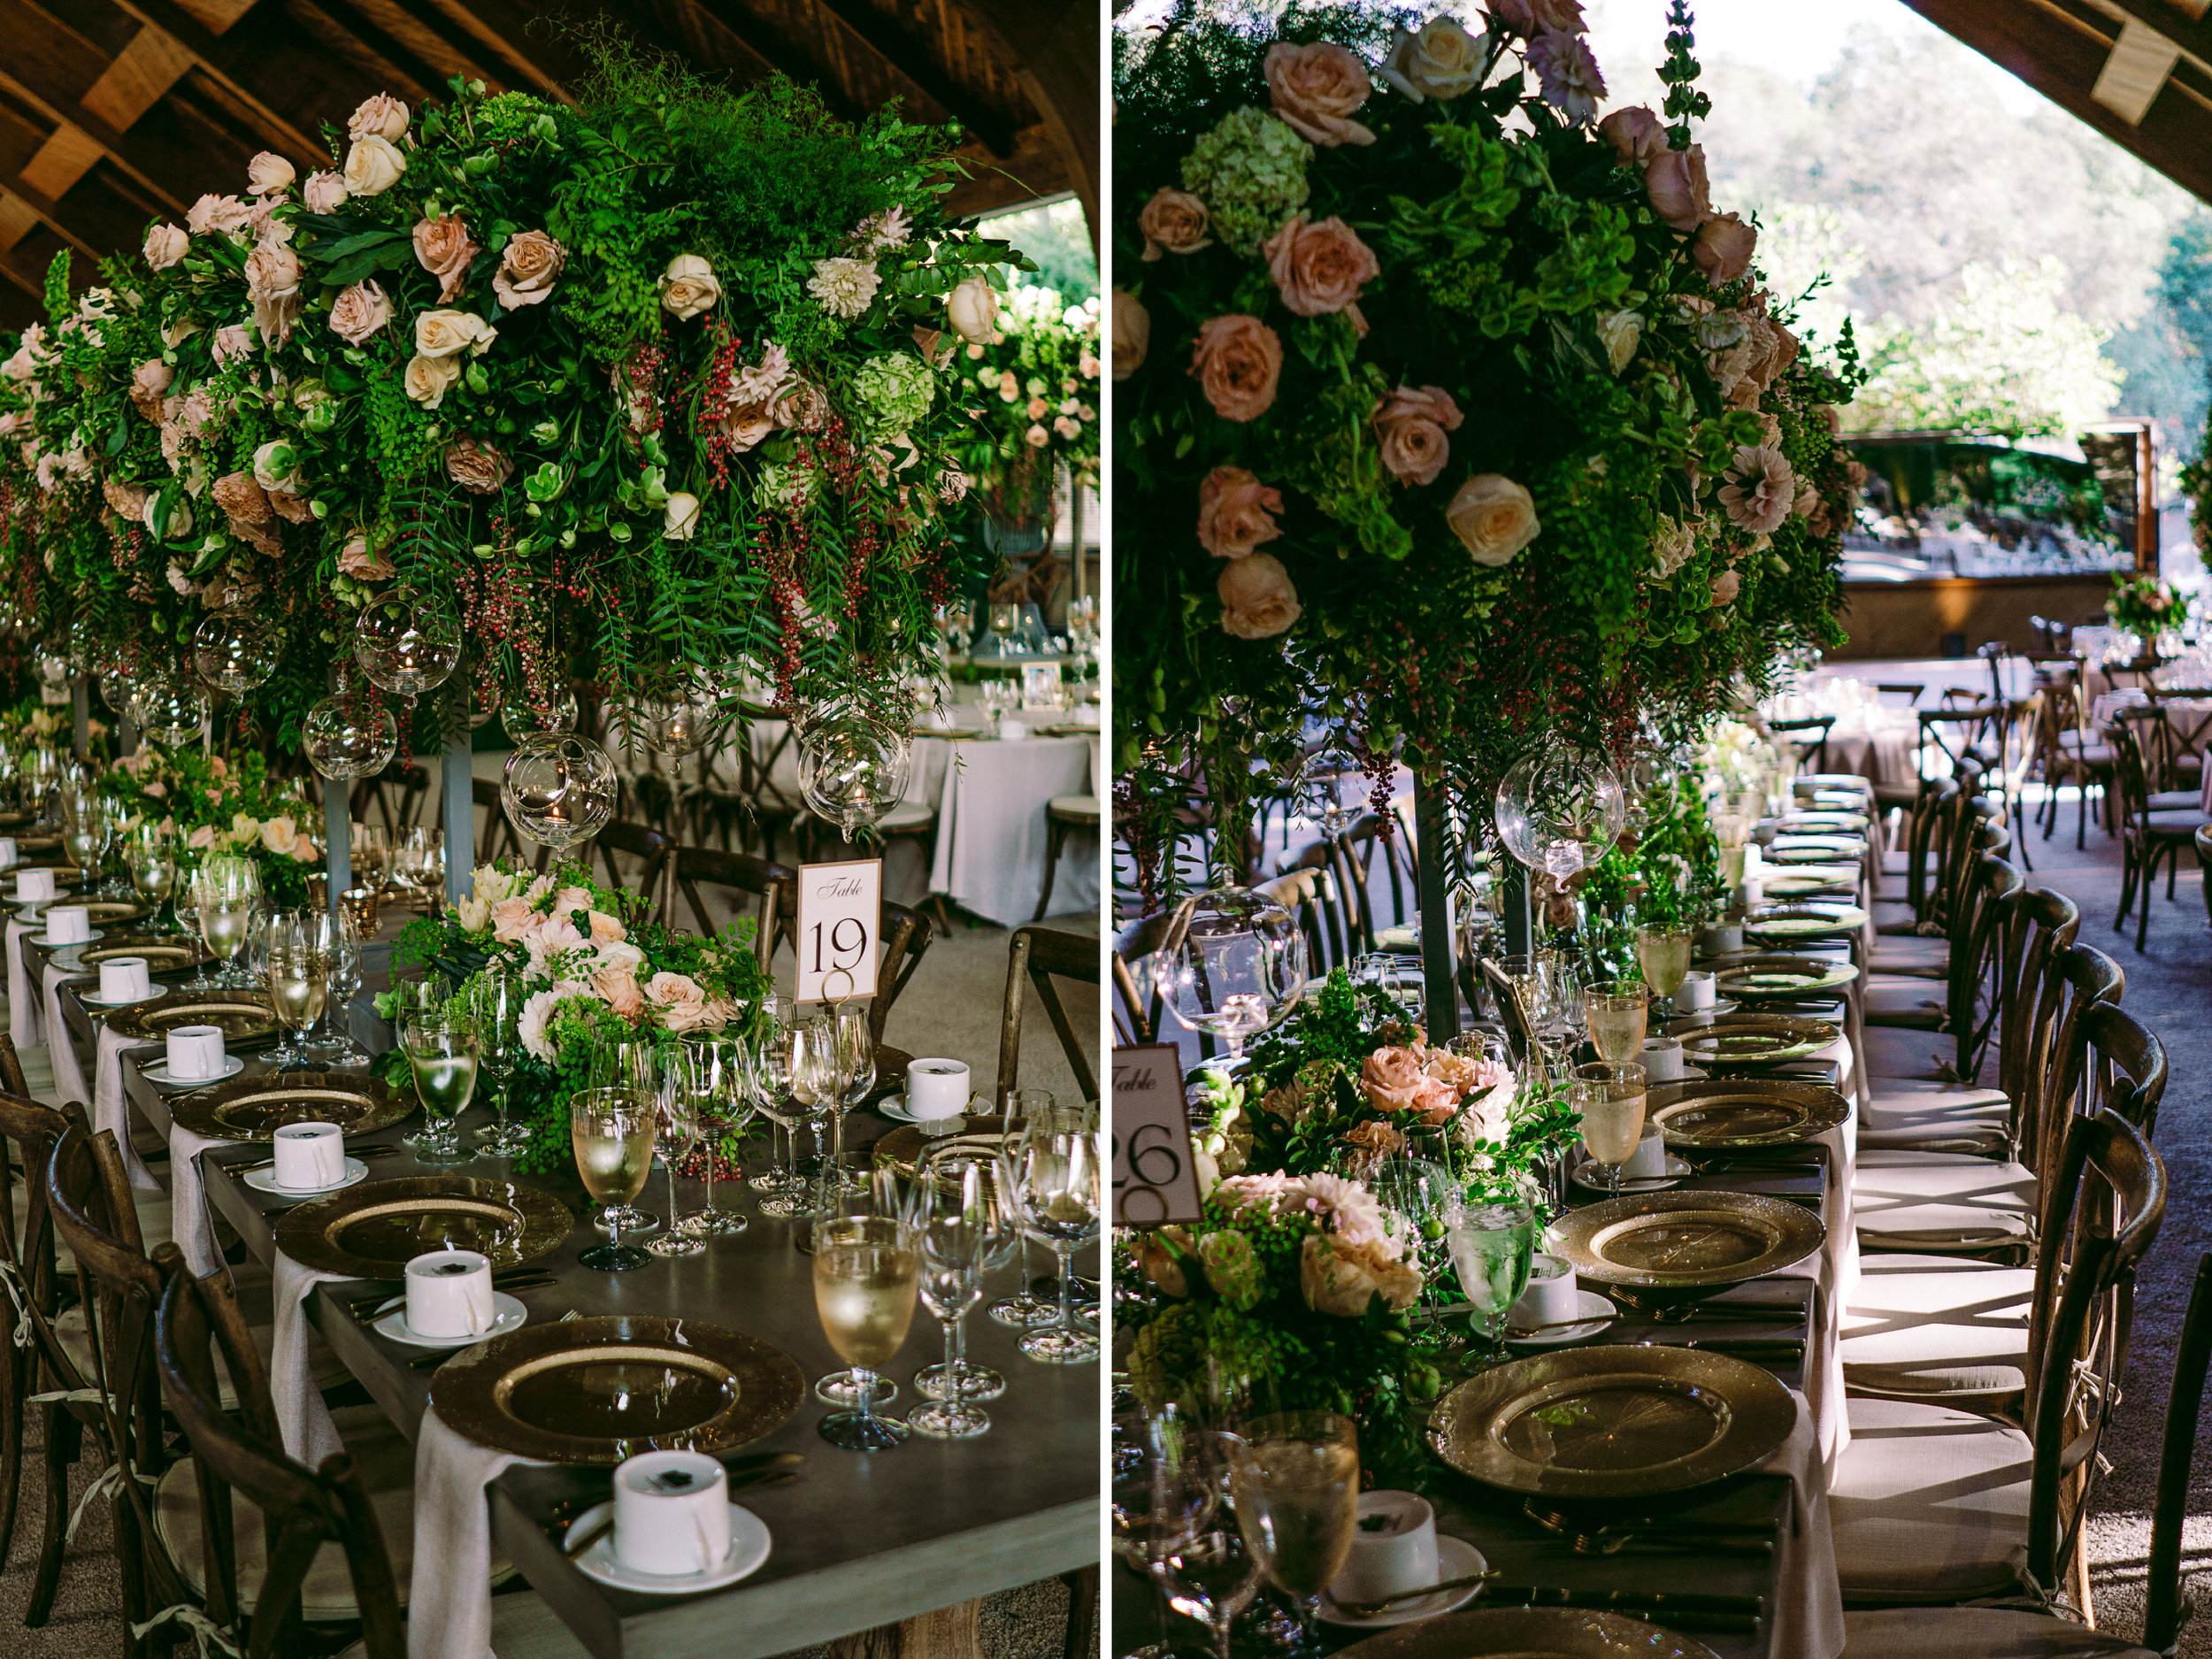 san diego wedding   photographer | view of tables labeled 19 and 26 decorated with flower   arrangements